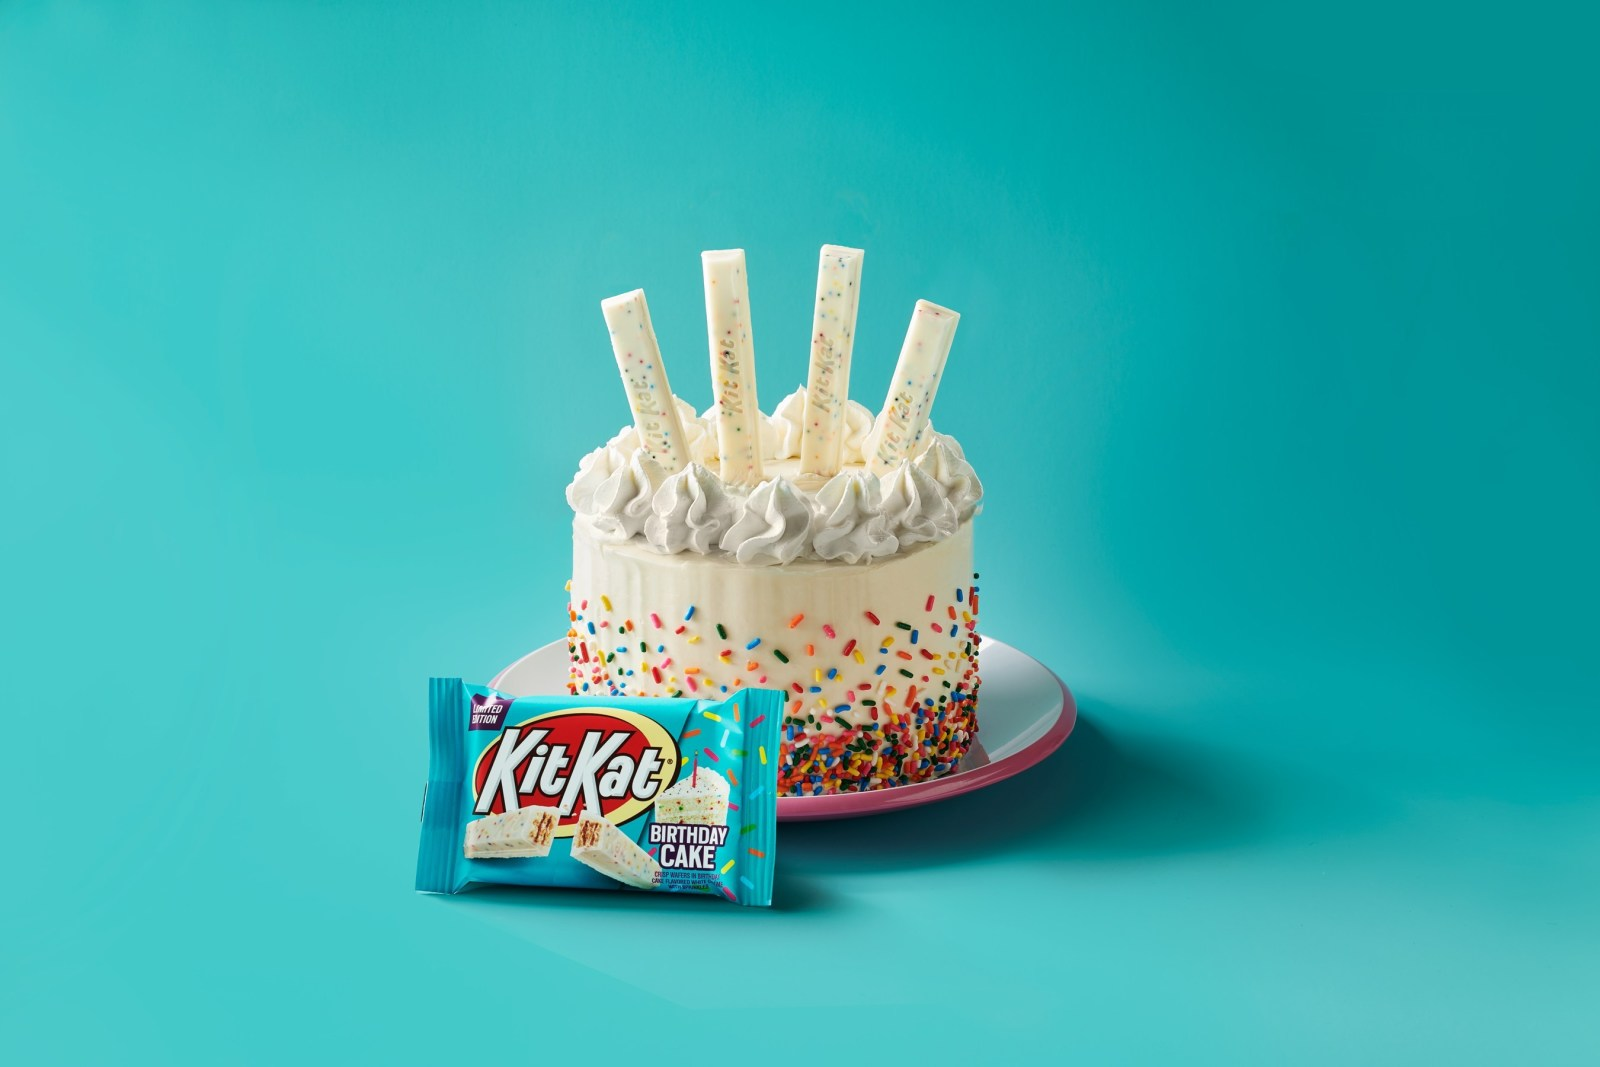 Kit Kat is launching Birthday Cake flavored chocolates this spring and they are delicious!